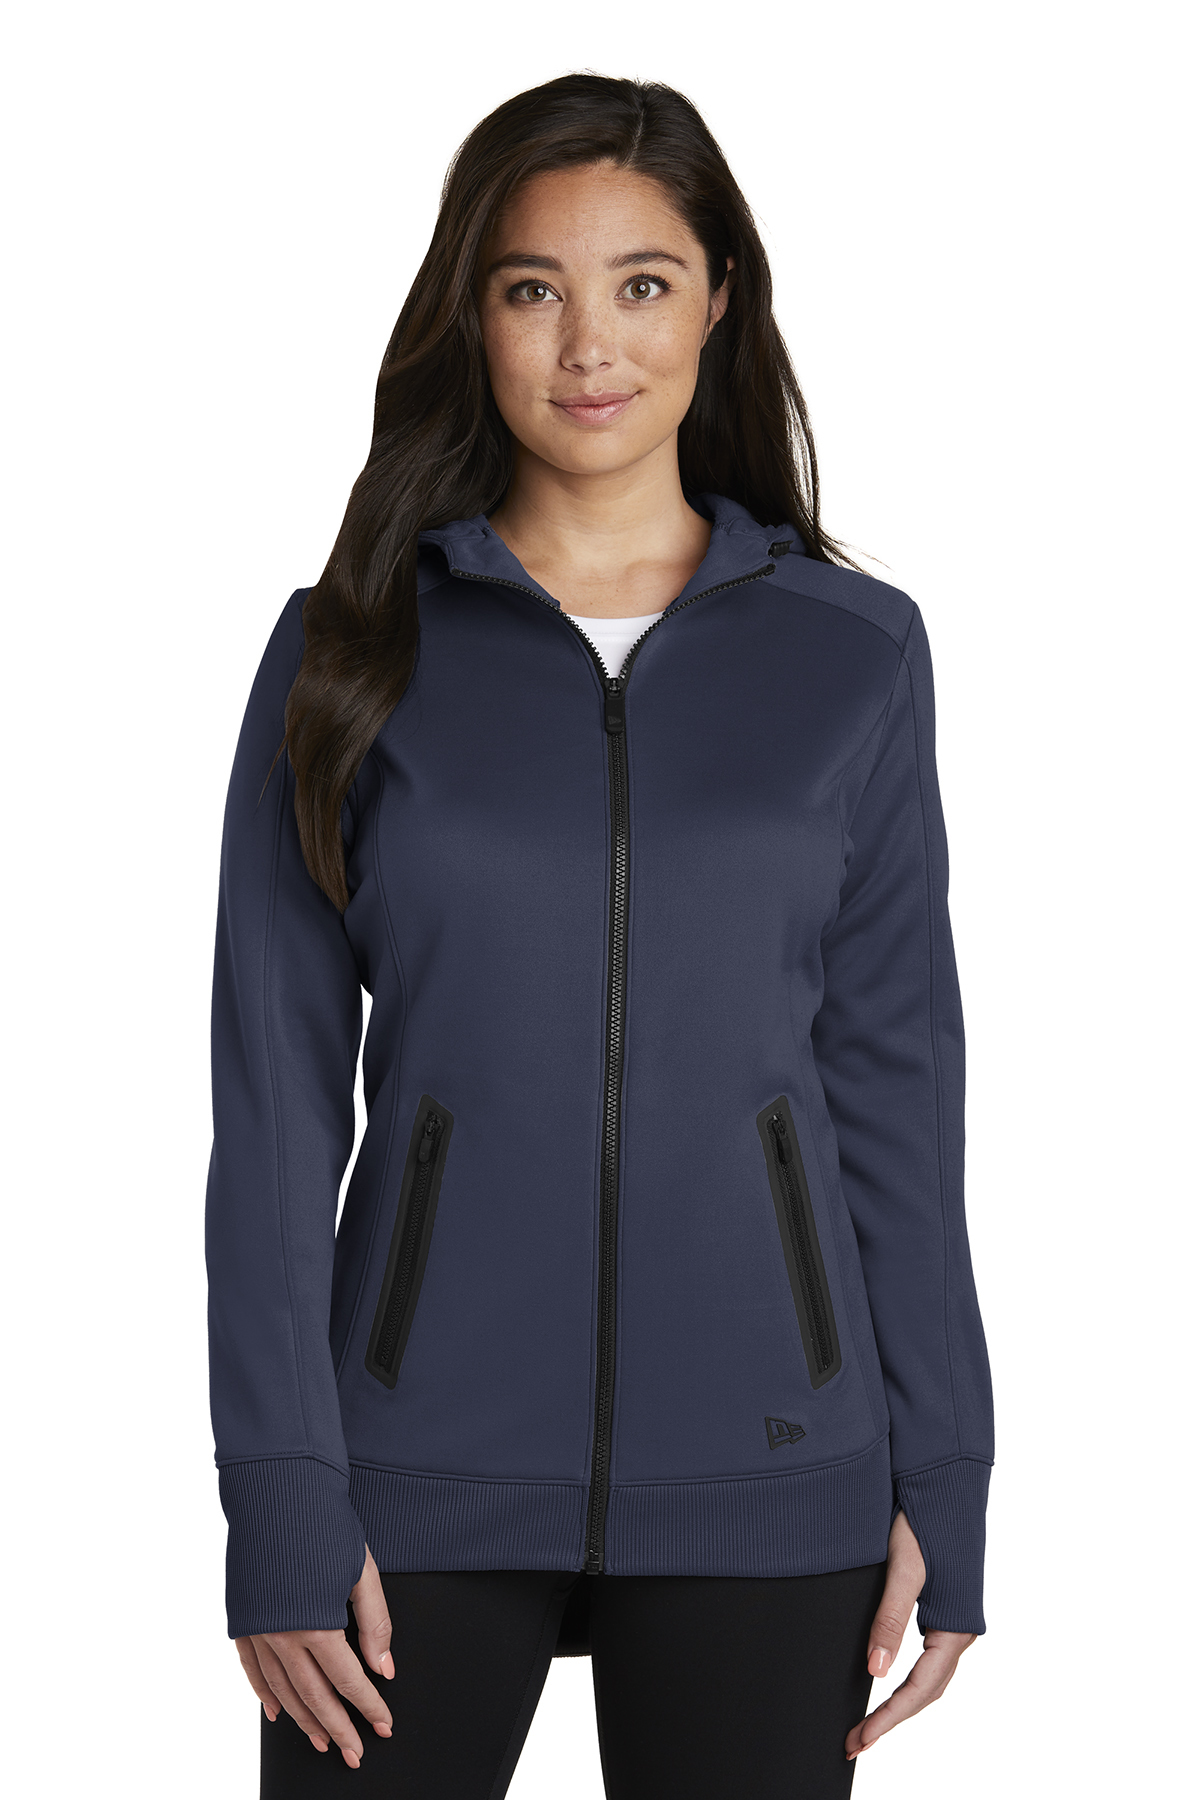 New Era LNEA522 - Ladies Venue Fleece Full-Zip Hoodie